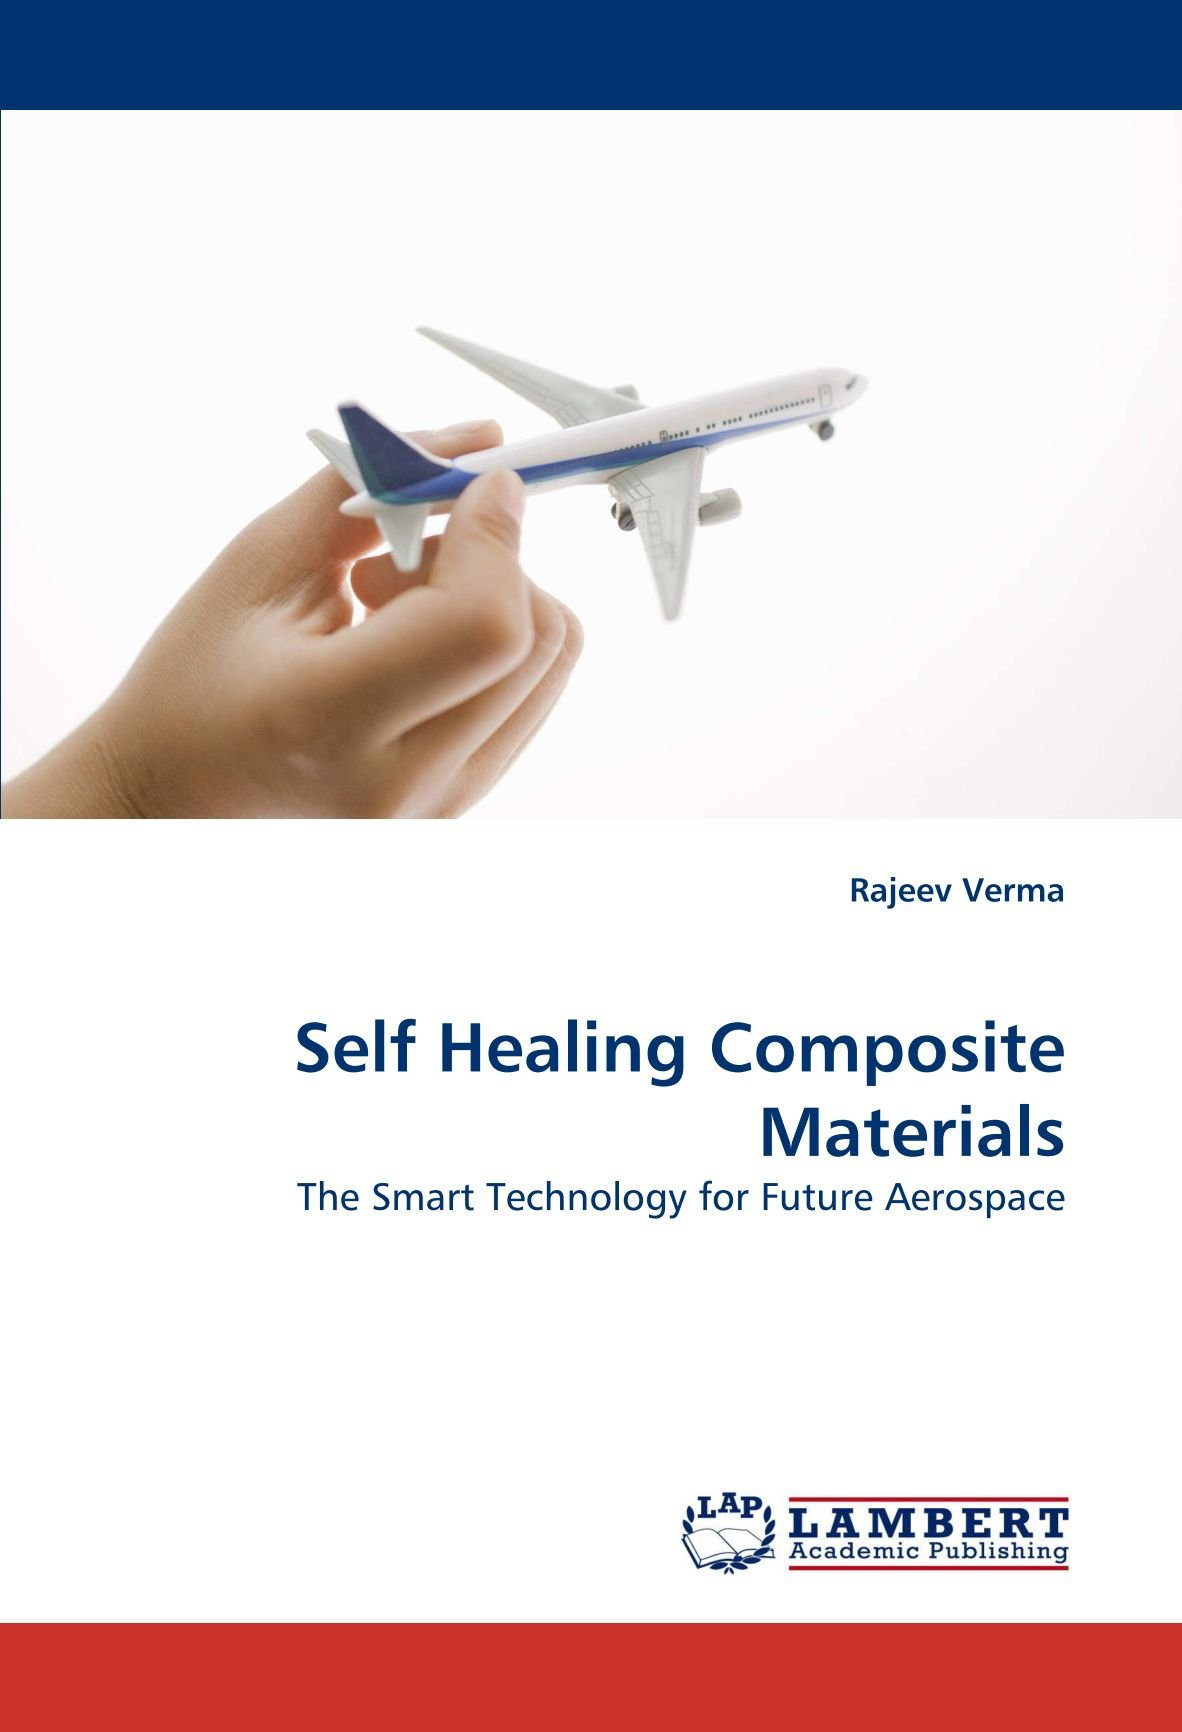 Self Healing Composite Materials: The Smart Technology for